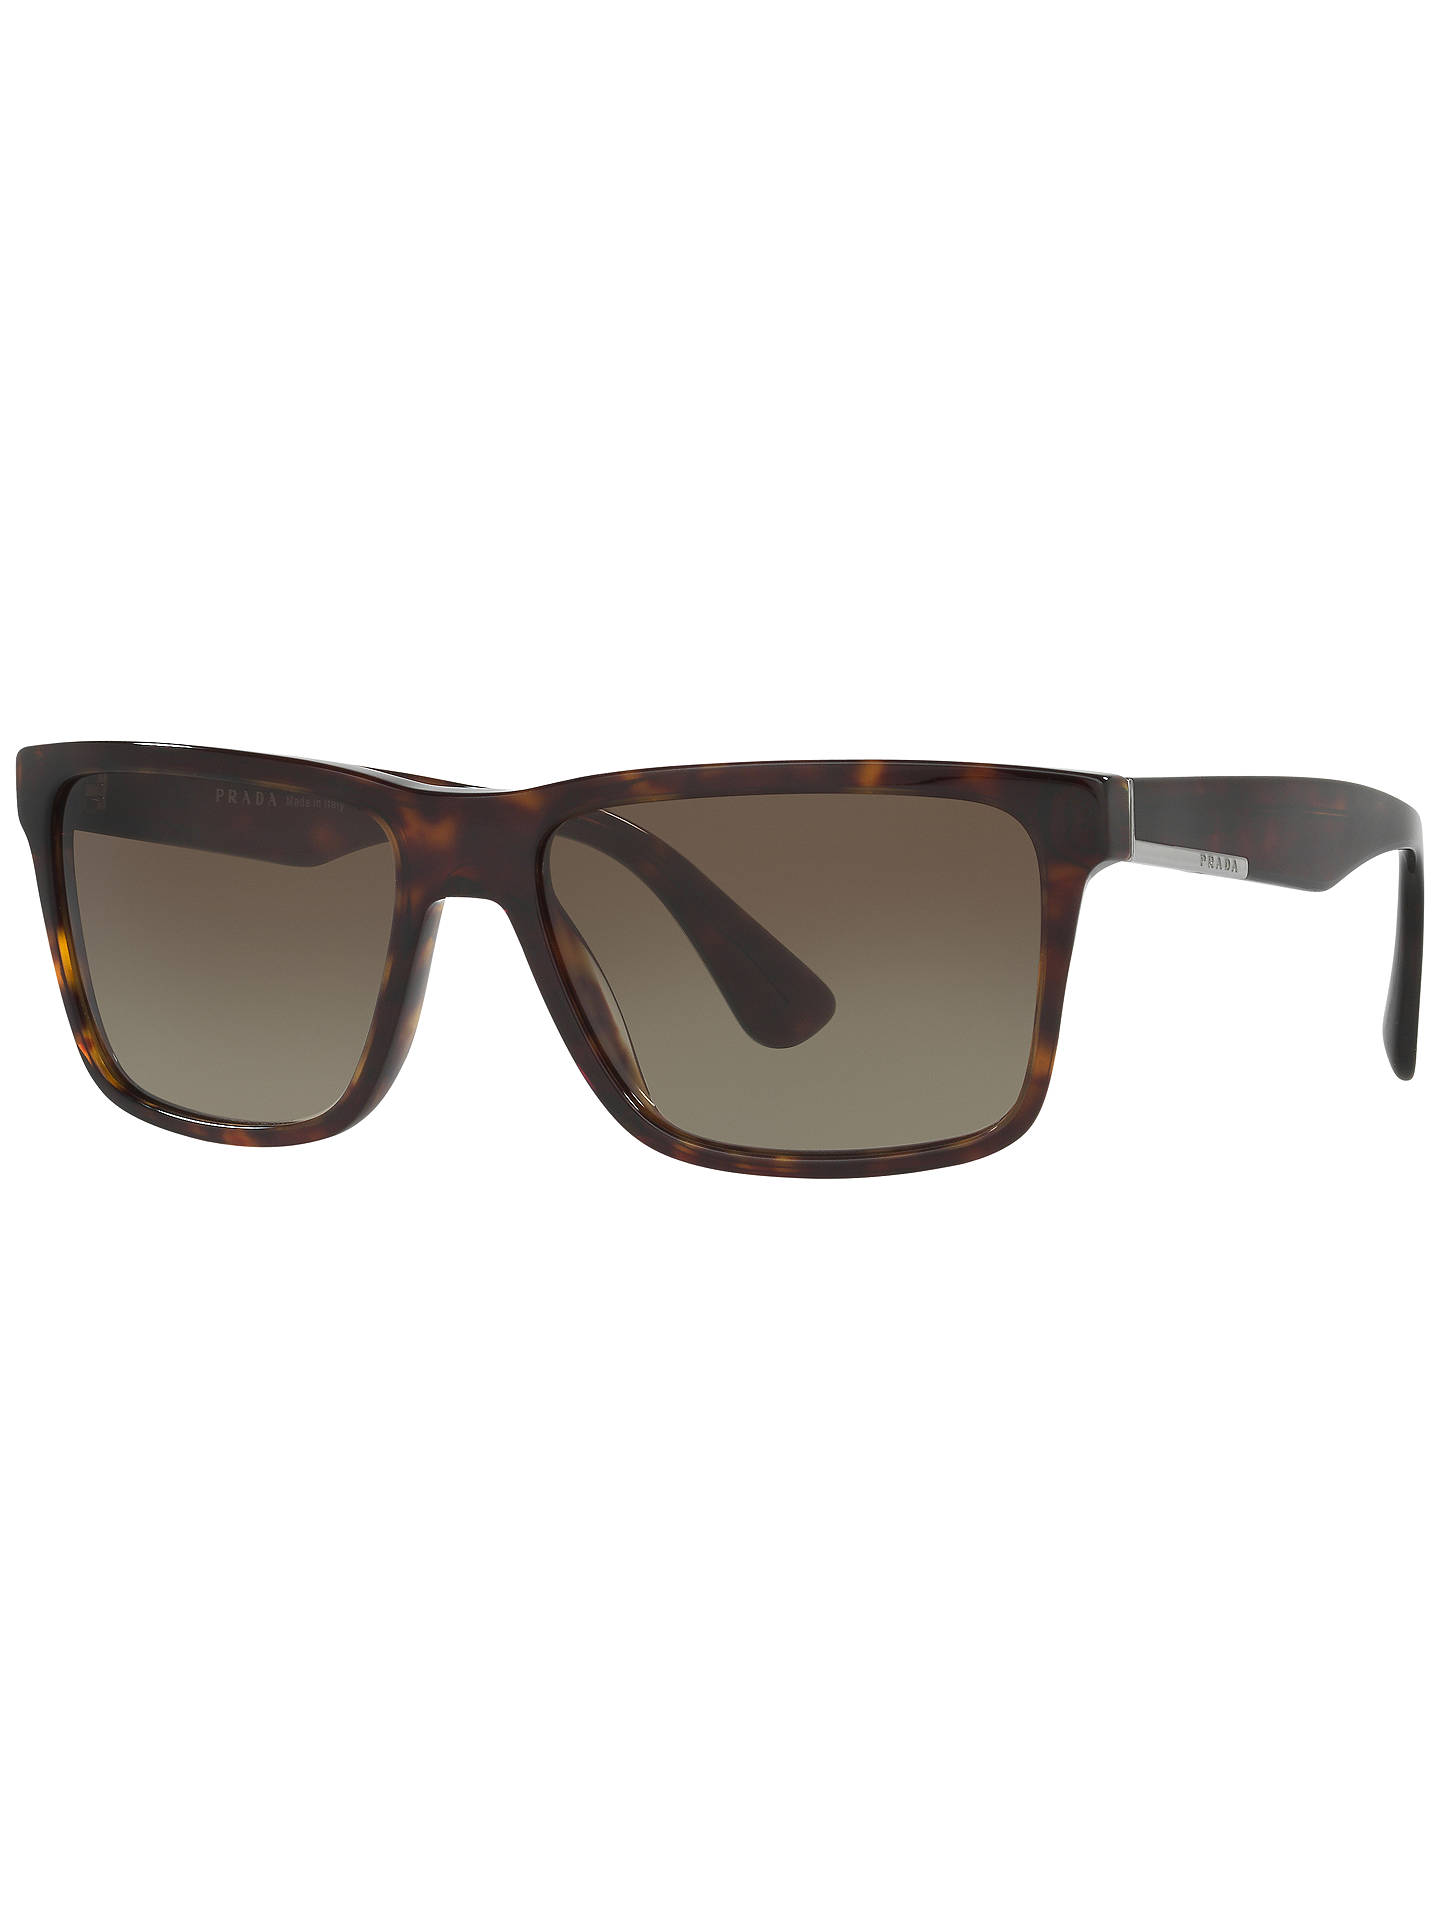 f93b7bf7fc Prada SPR19S Square Gradient Sunglasses at John Lewis   Partners